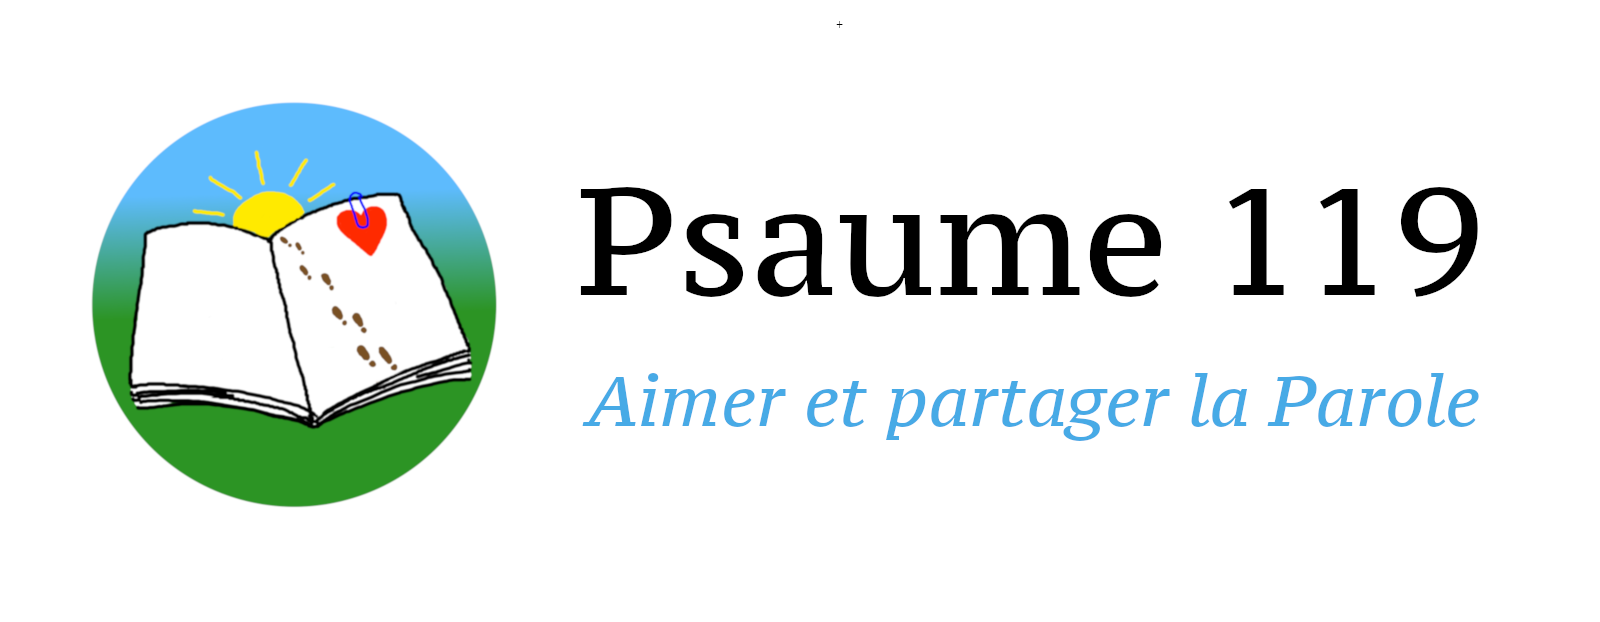 Psaume 119